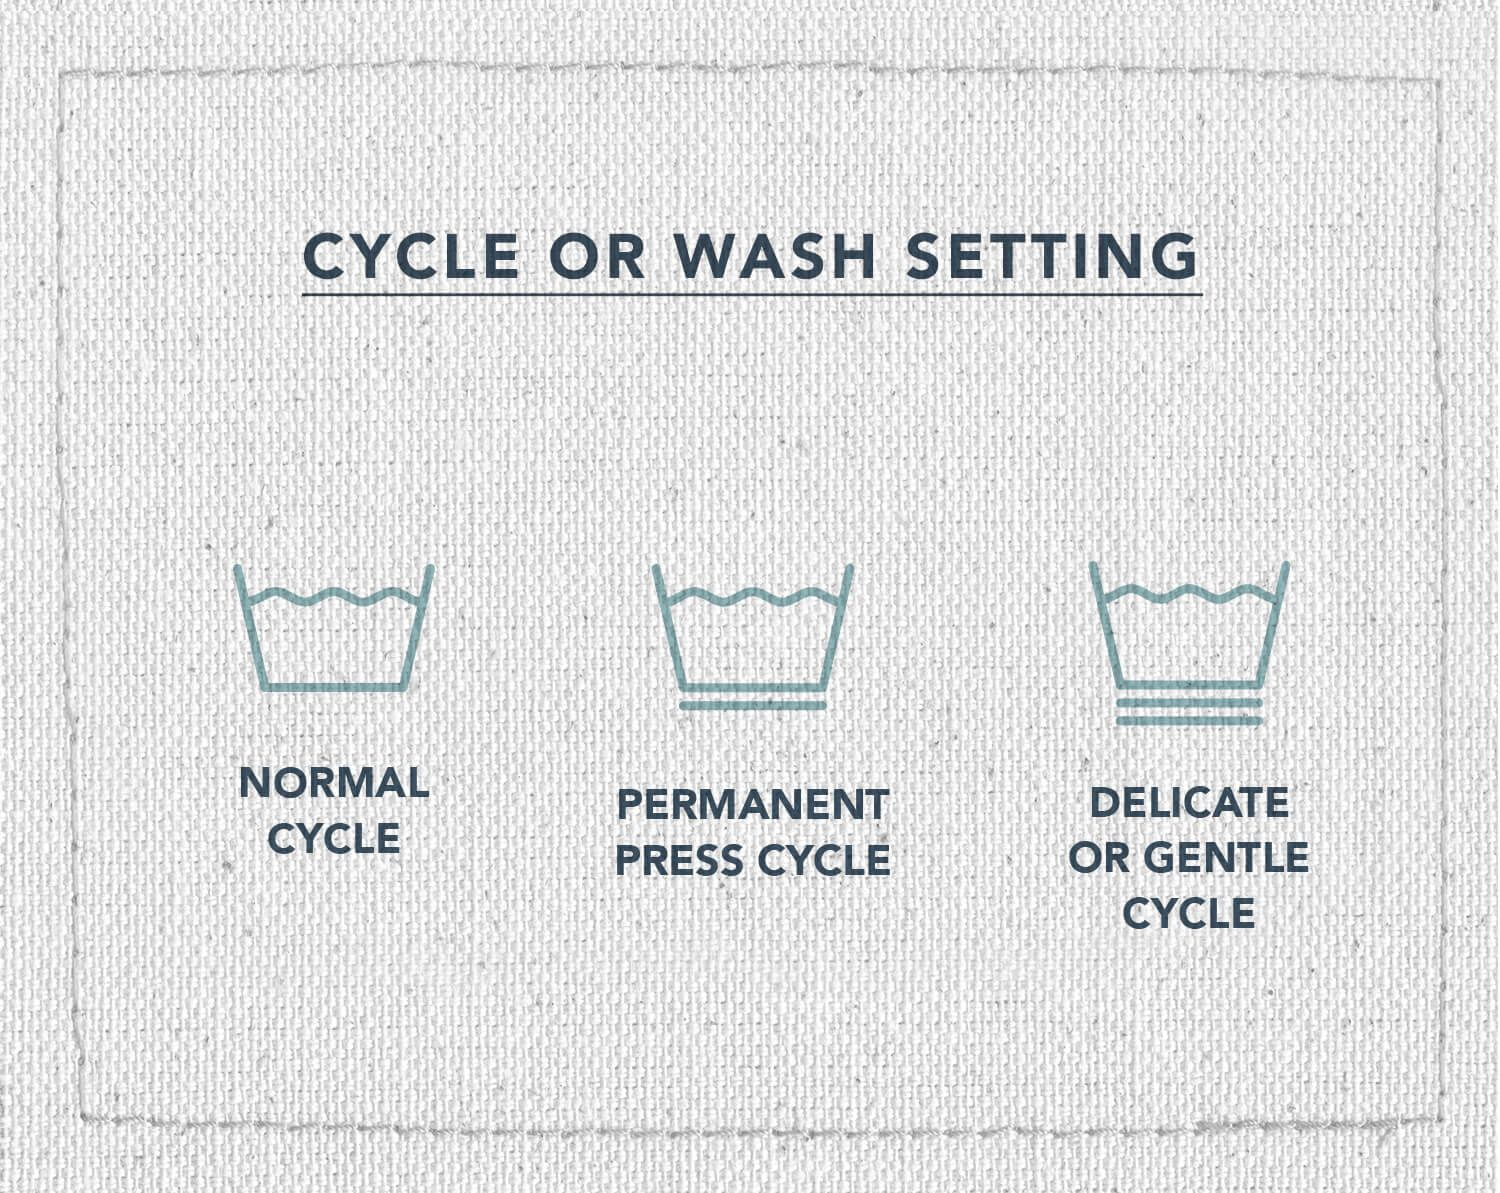 An infographic of three laundry care symbols, indicating what symbol means what cycle to wash your clothes on, normal cycle, permanent press cycle, or delicate or gentle cycle